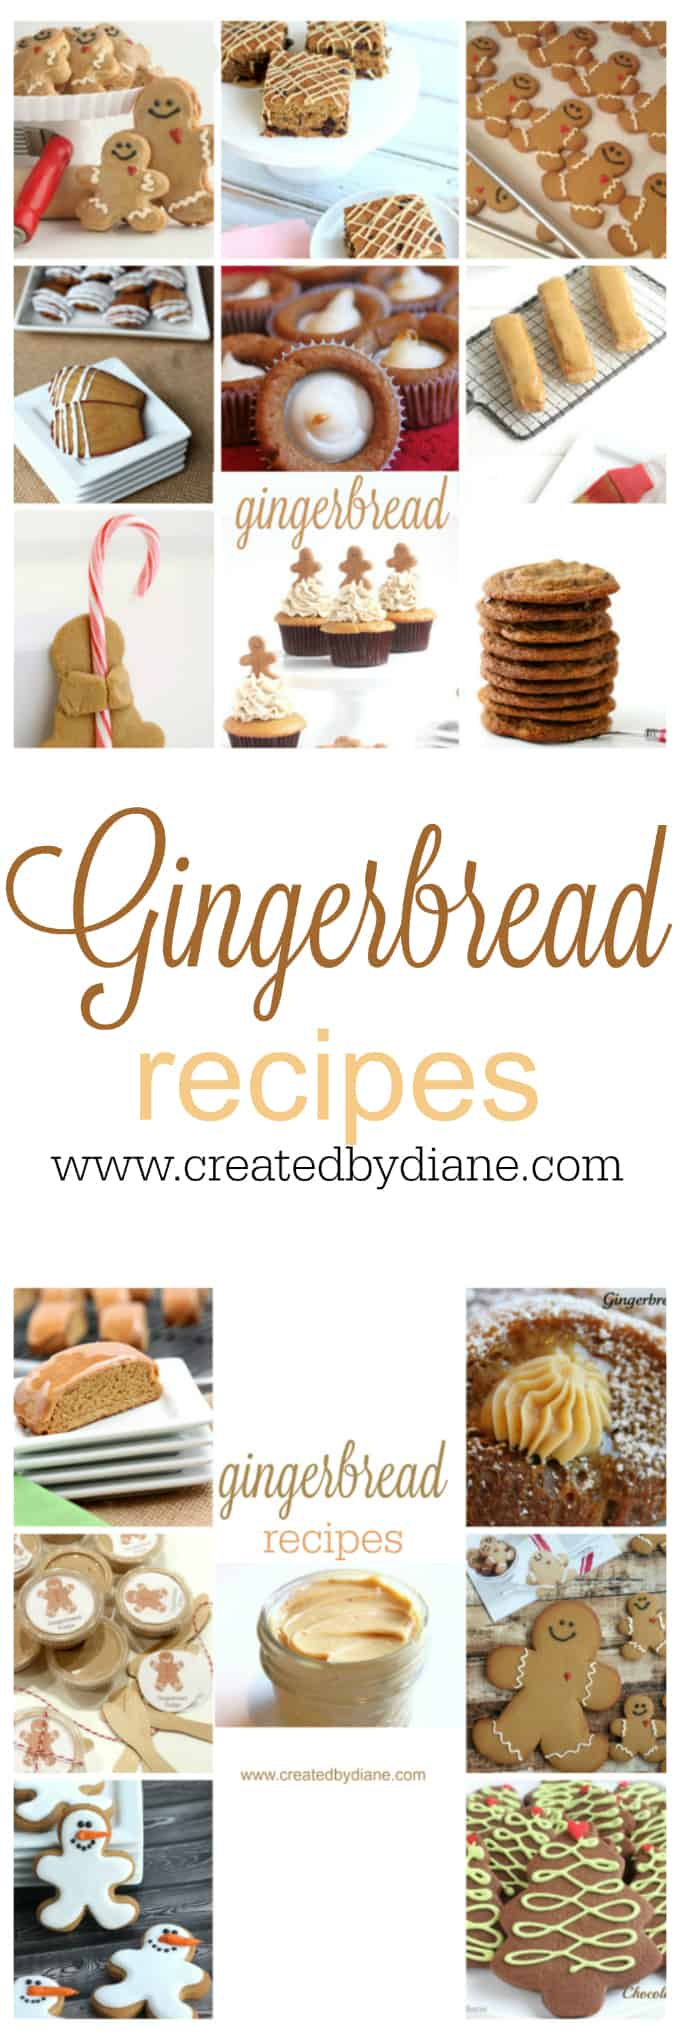 gingerbread recipes from food blogger www.createdbydiane.com